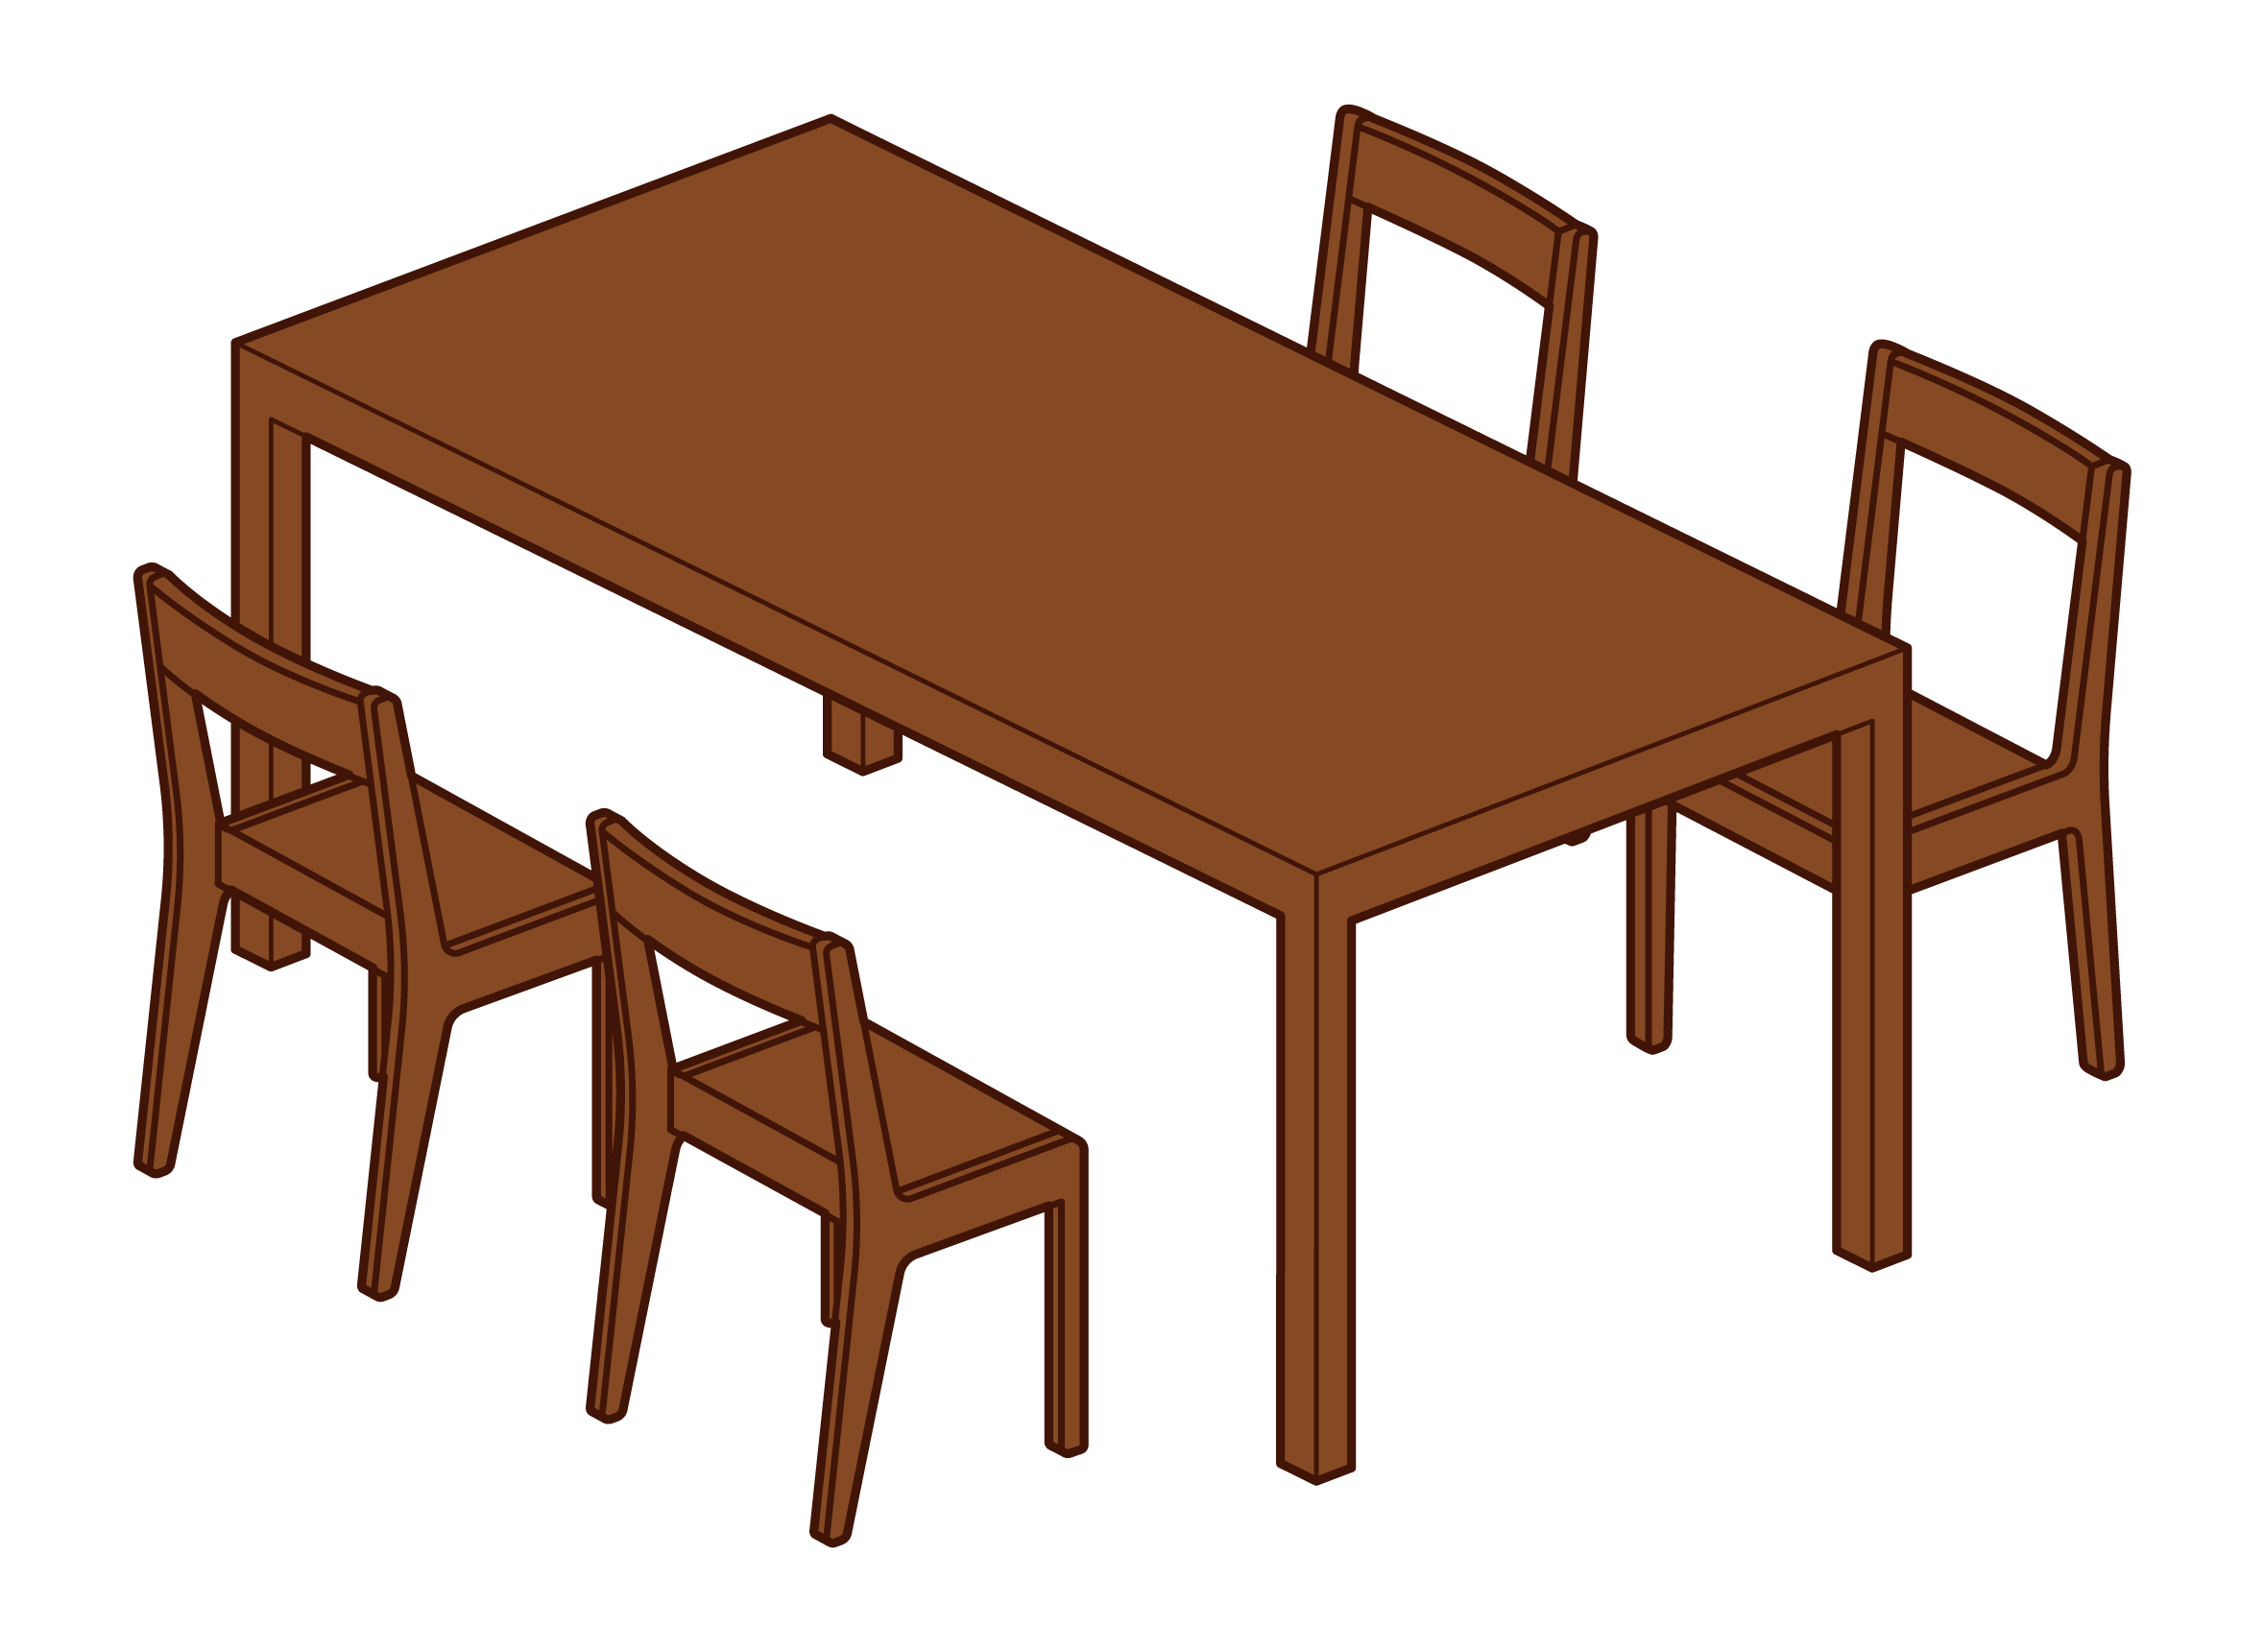 Dining table and chair illustrations